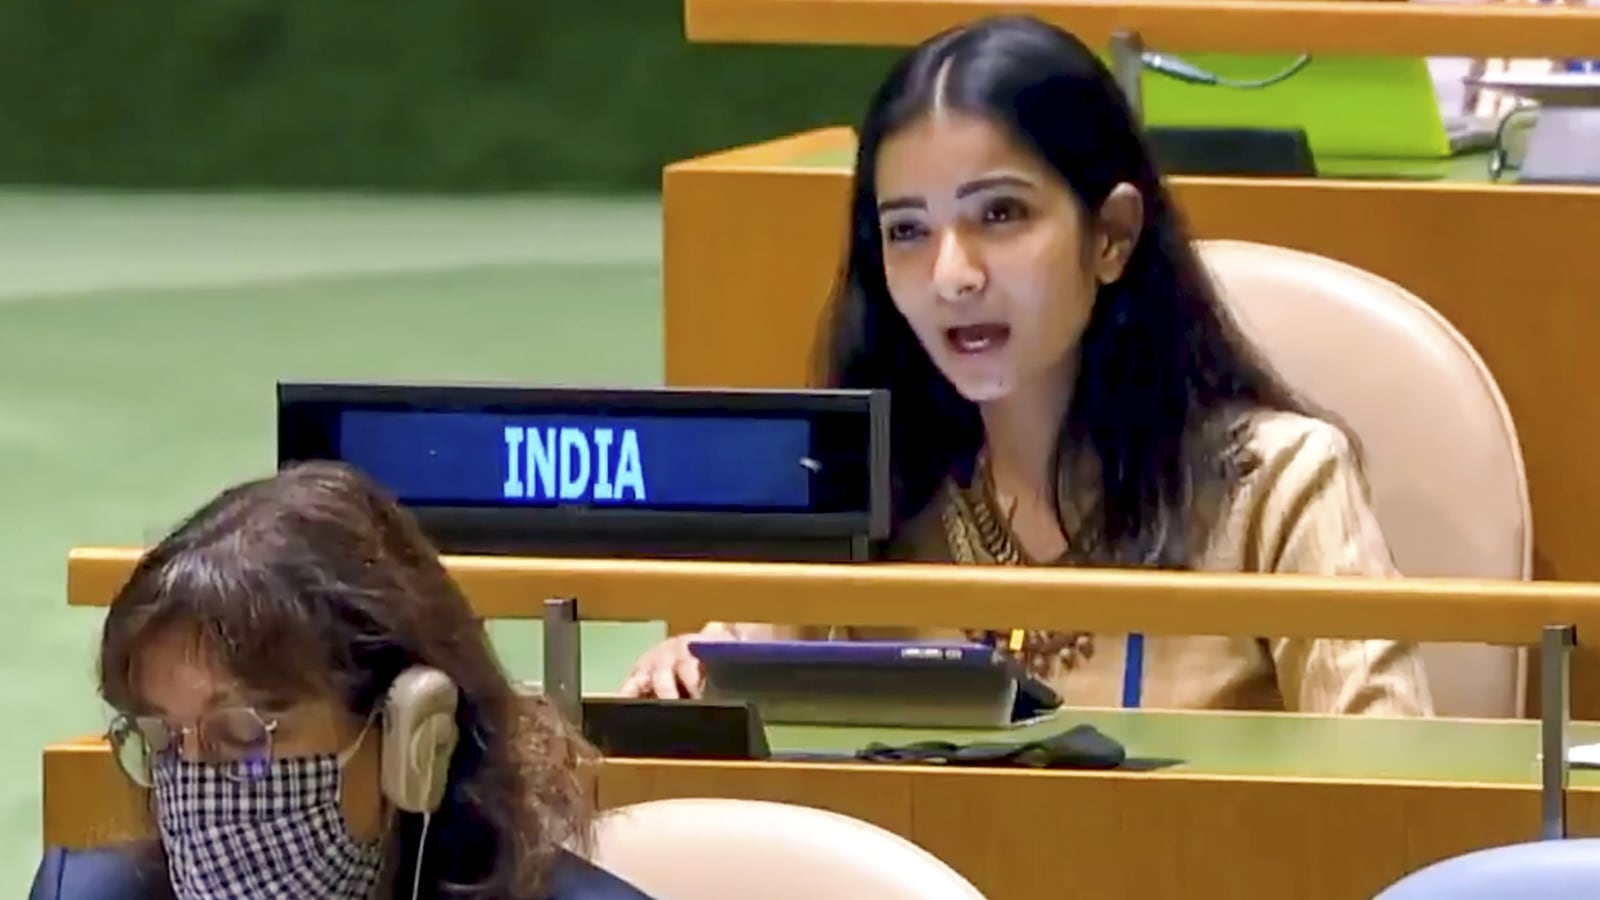 Sneha Dubey: Meet the IFS officer who gave fiery response to Imran Khan at  UN   Latest News India - Hindustan Times